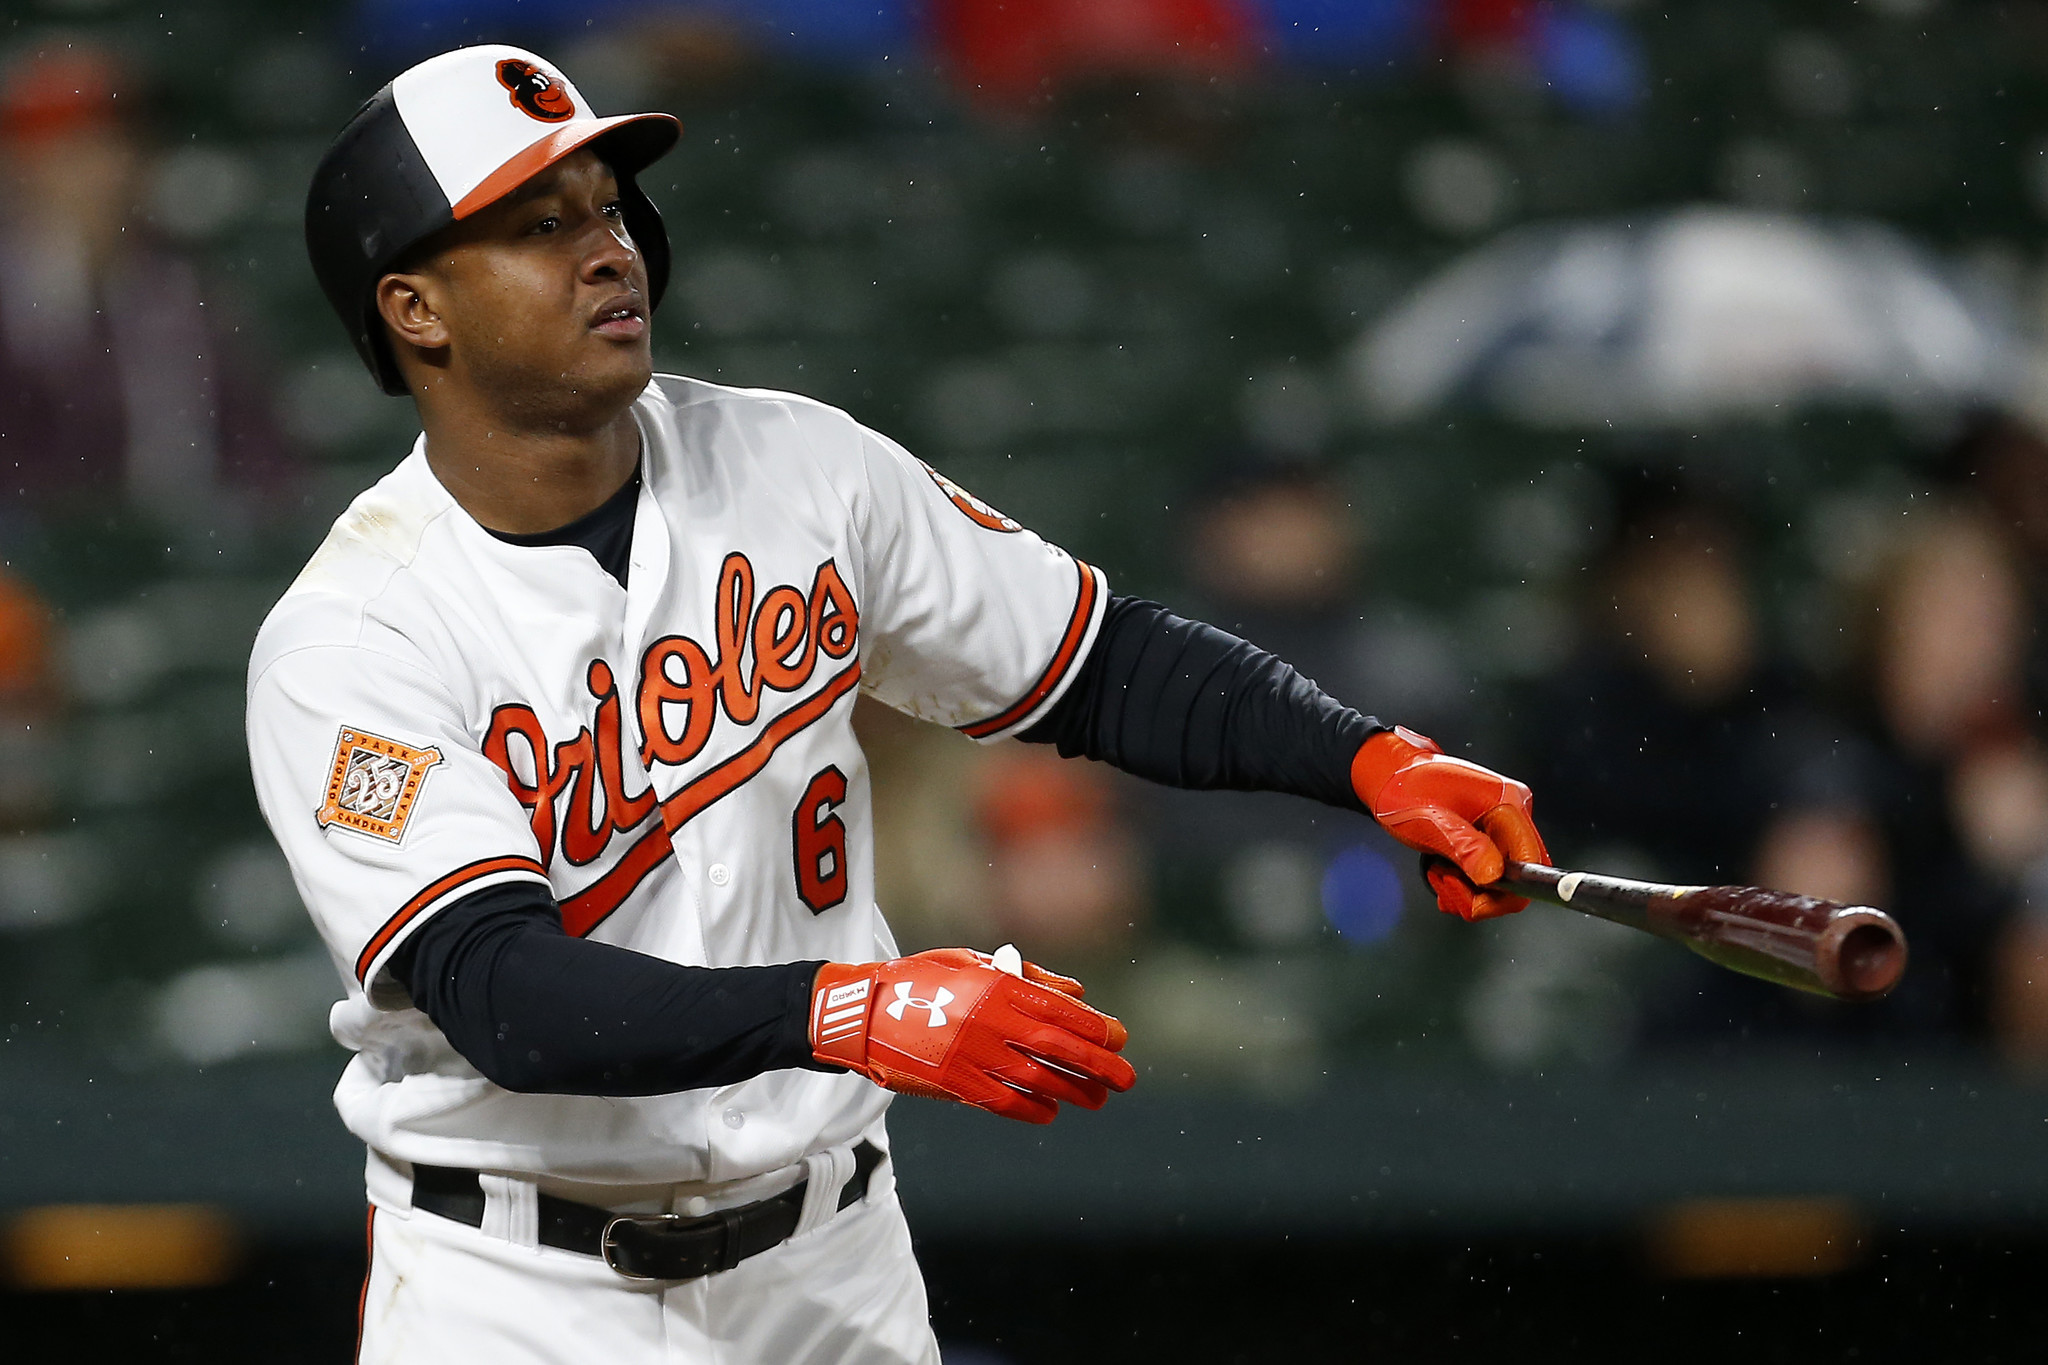 Bal-orioles-jonathan-schoop-s-physical-maturation-stands-out-as-power-continues-to-show-20170426